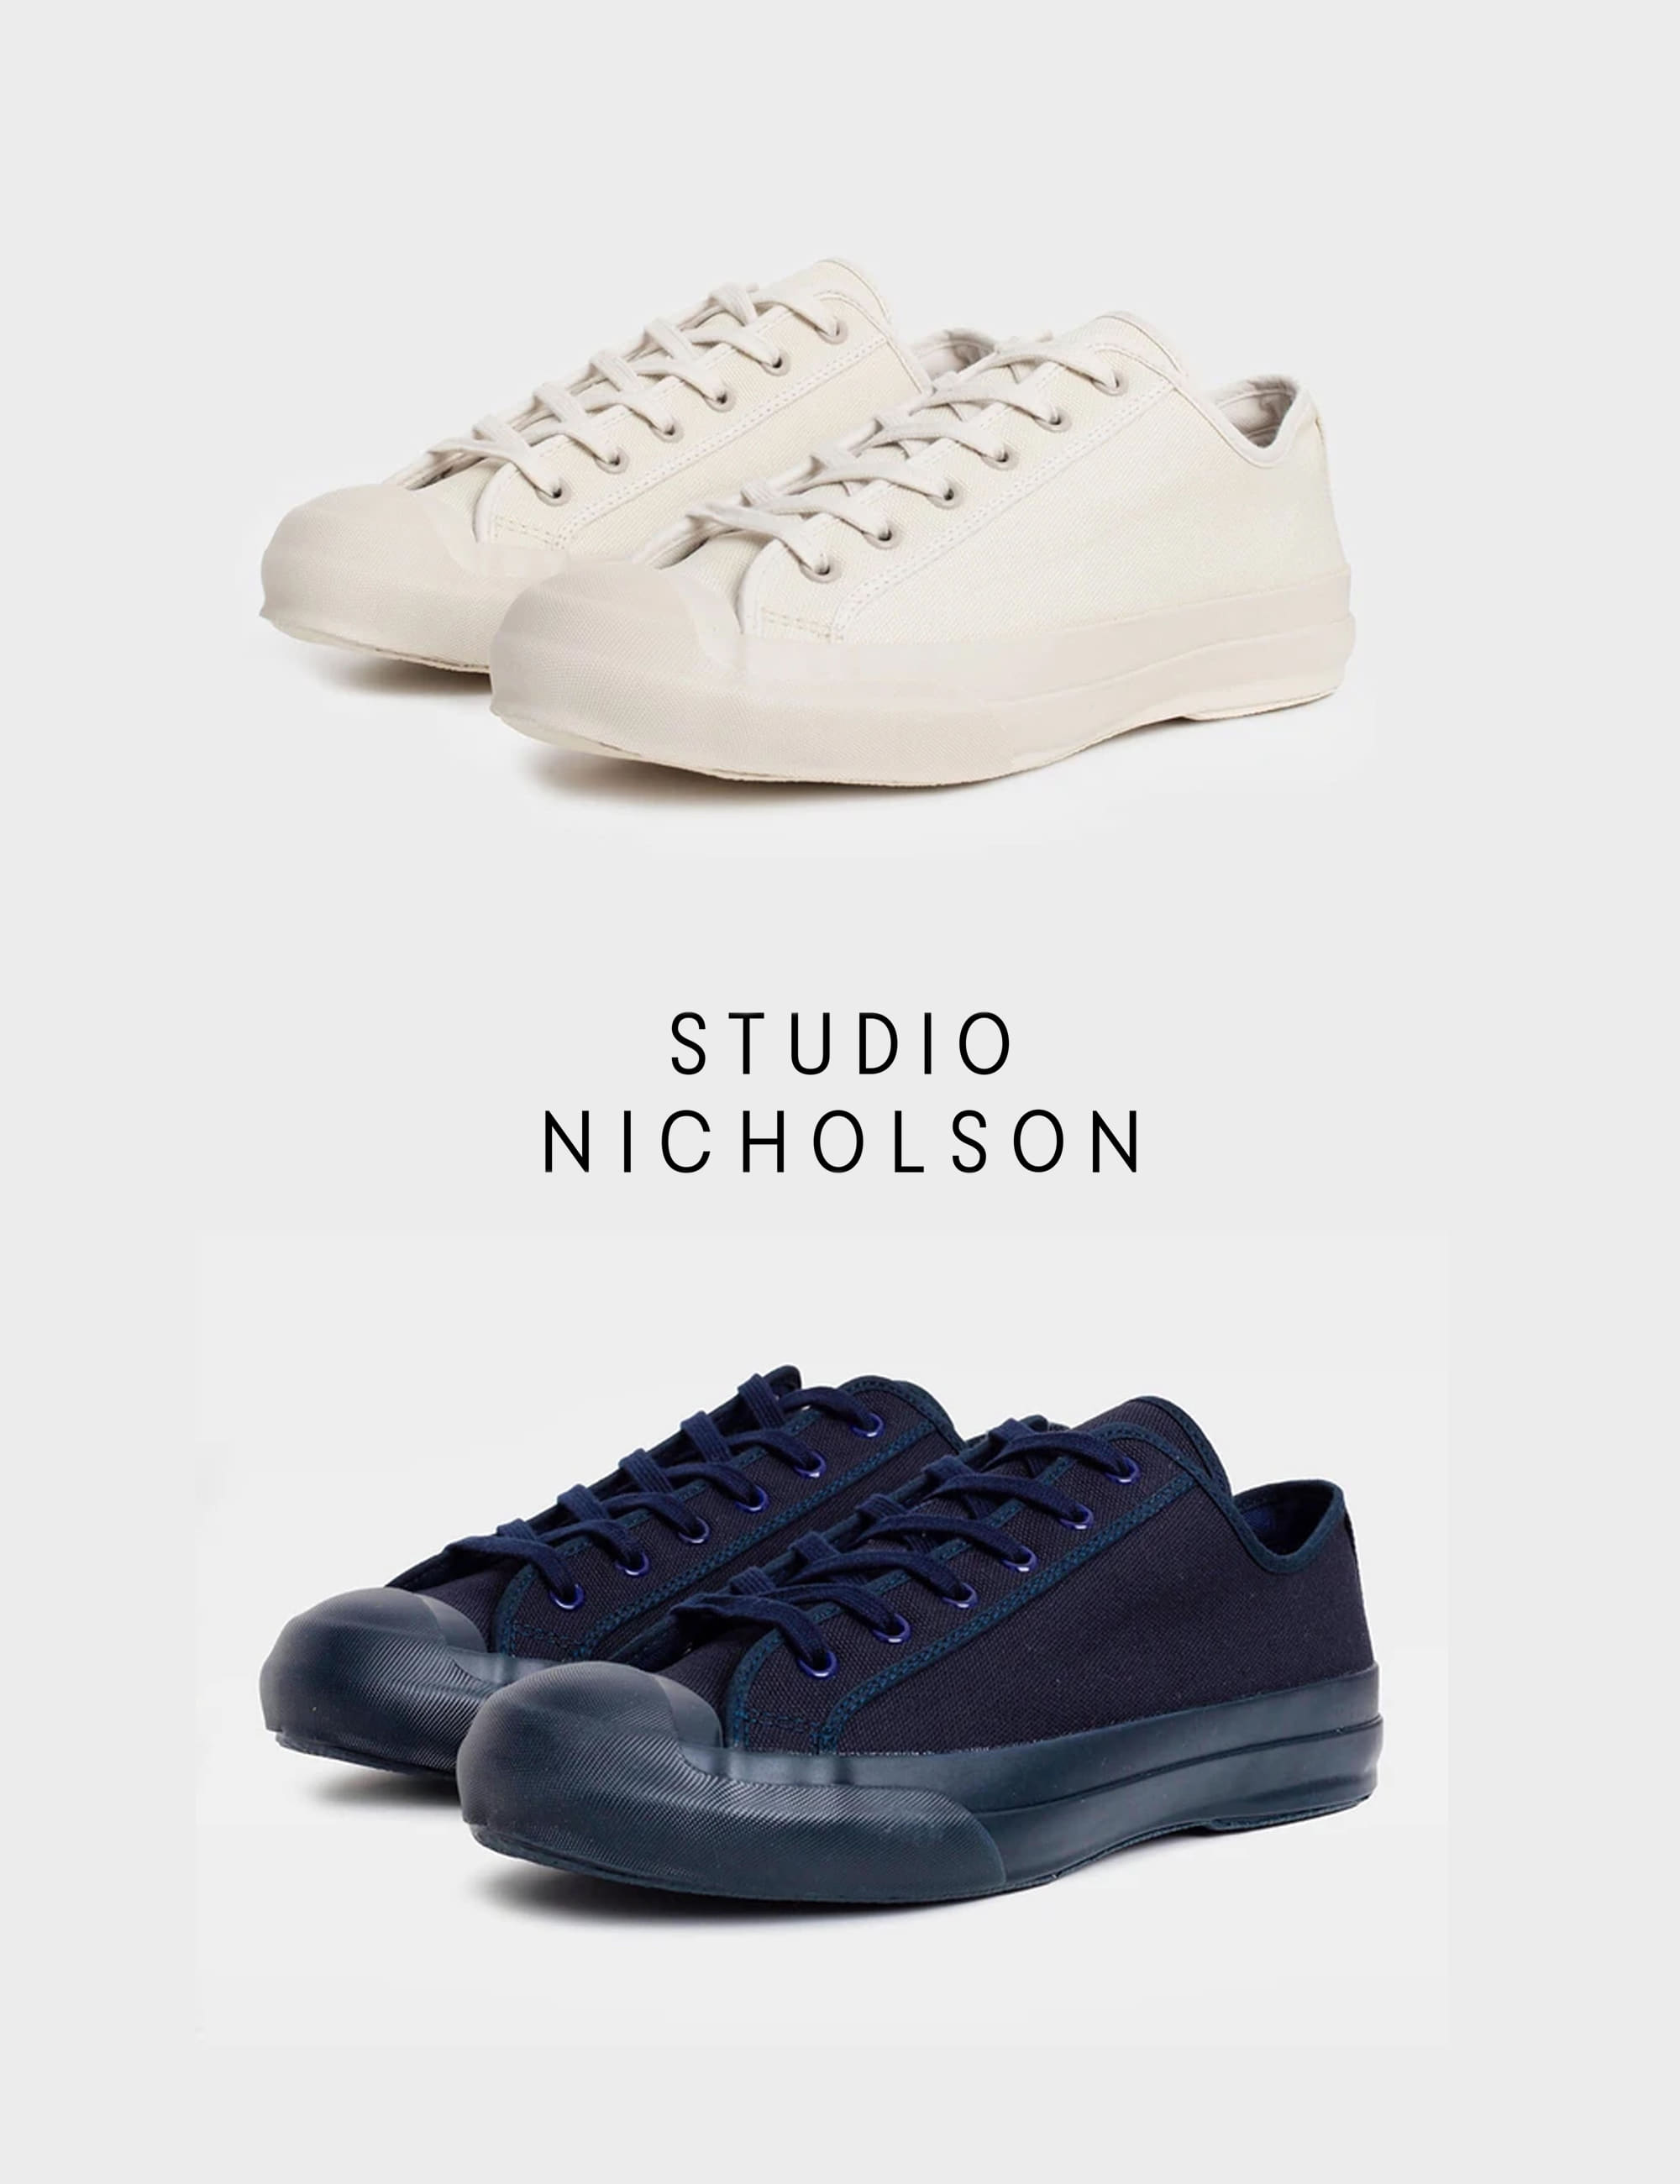 Studio Nicholson AW20 LOOKBOOK